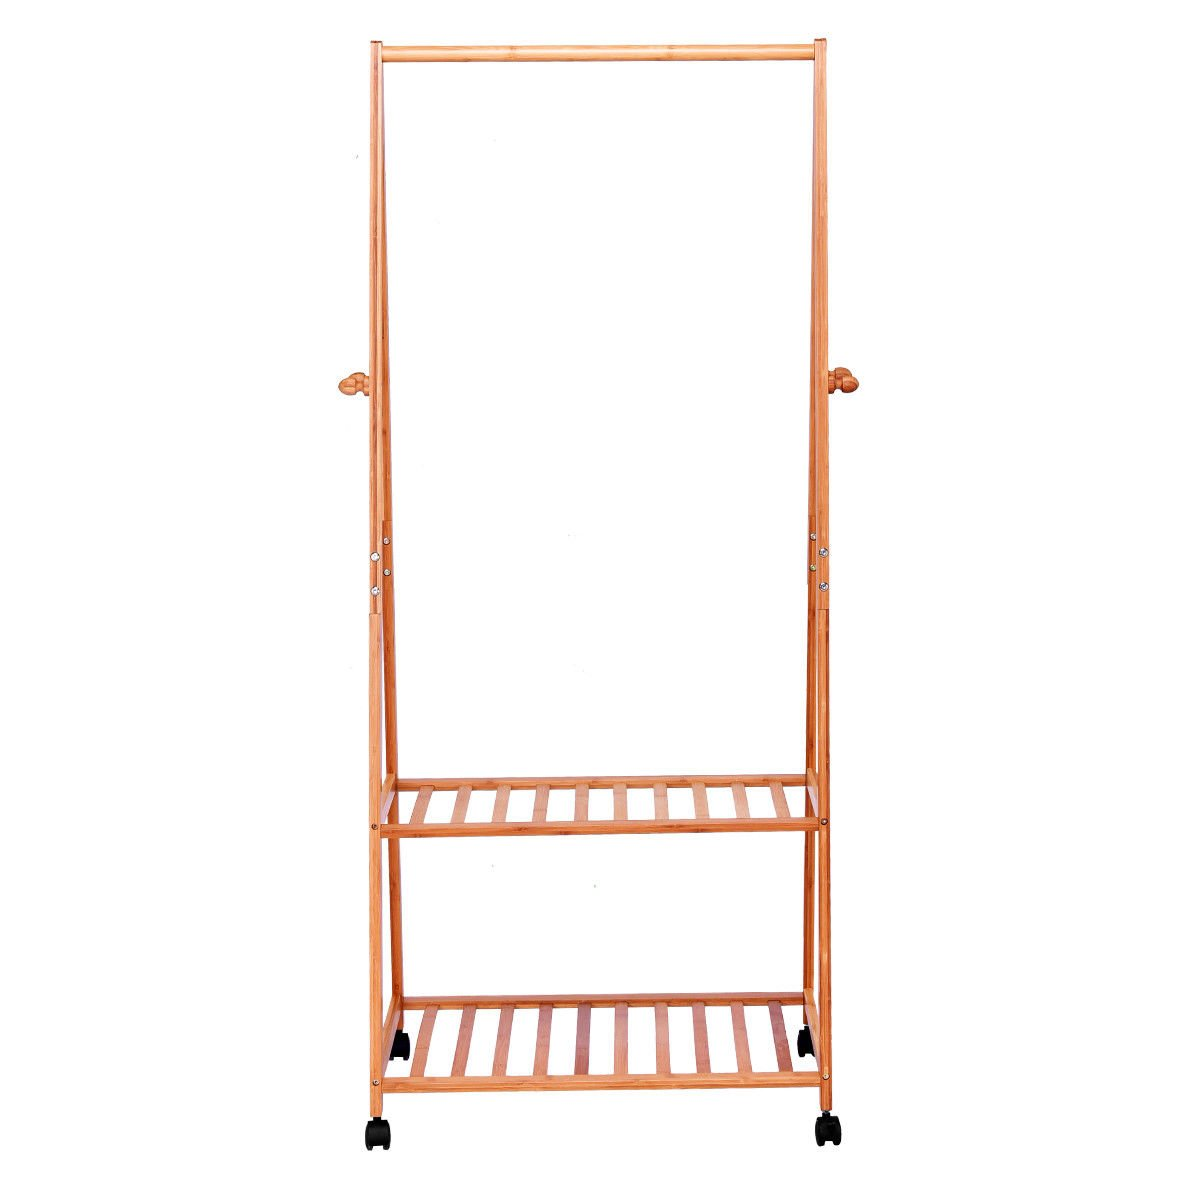 Global House Products GHP 32''x18''x66'' Bamboo Garment Laundry Rack with 2 Shoes Shelves & 4 Coat Hooks